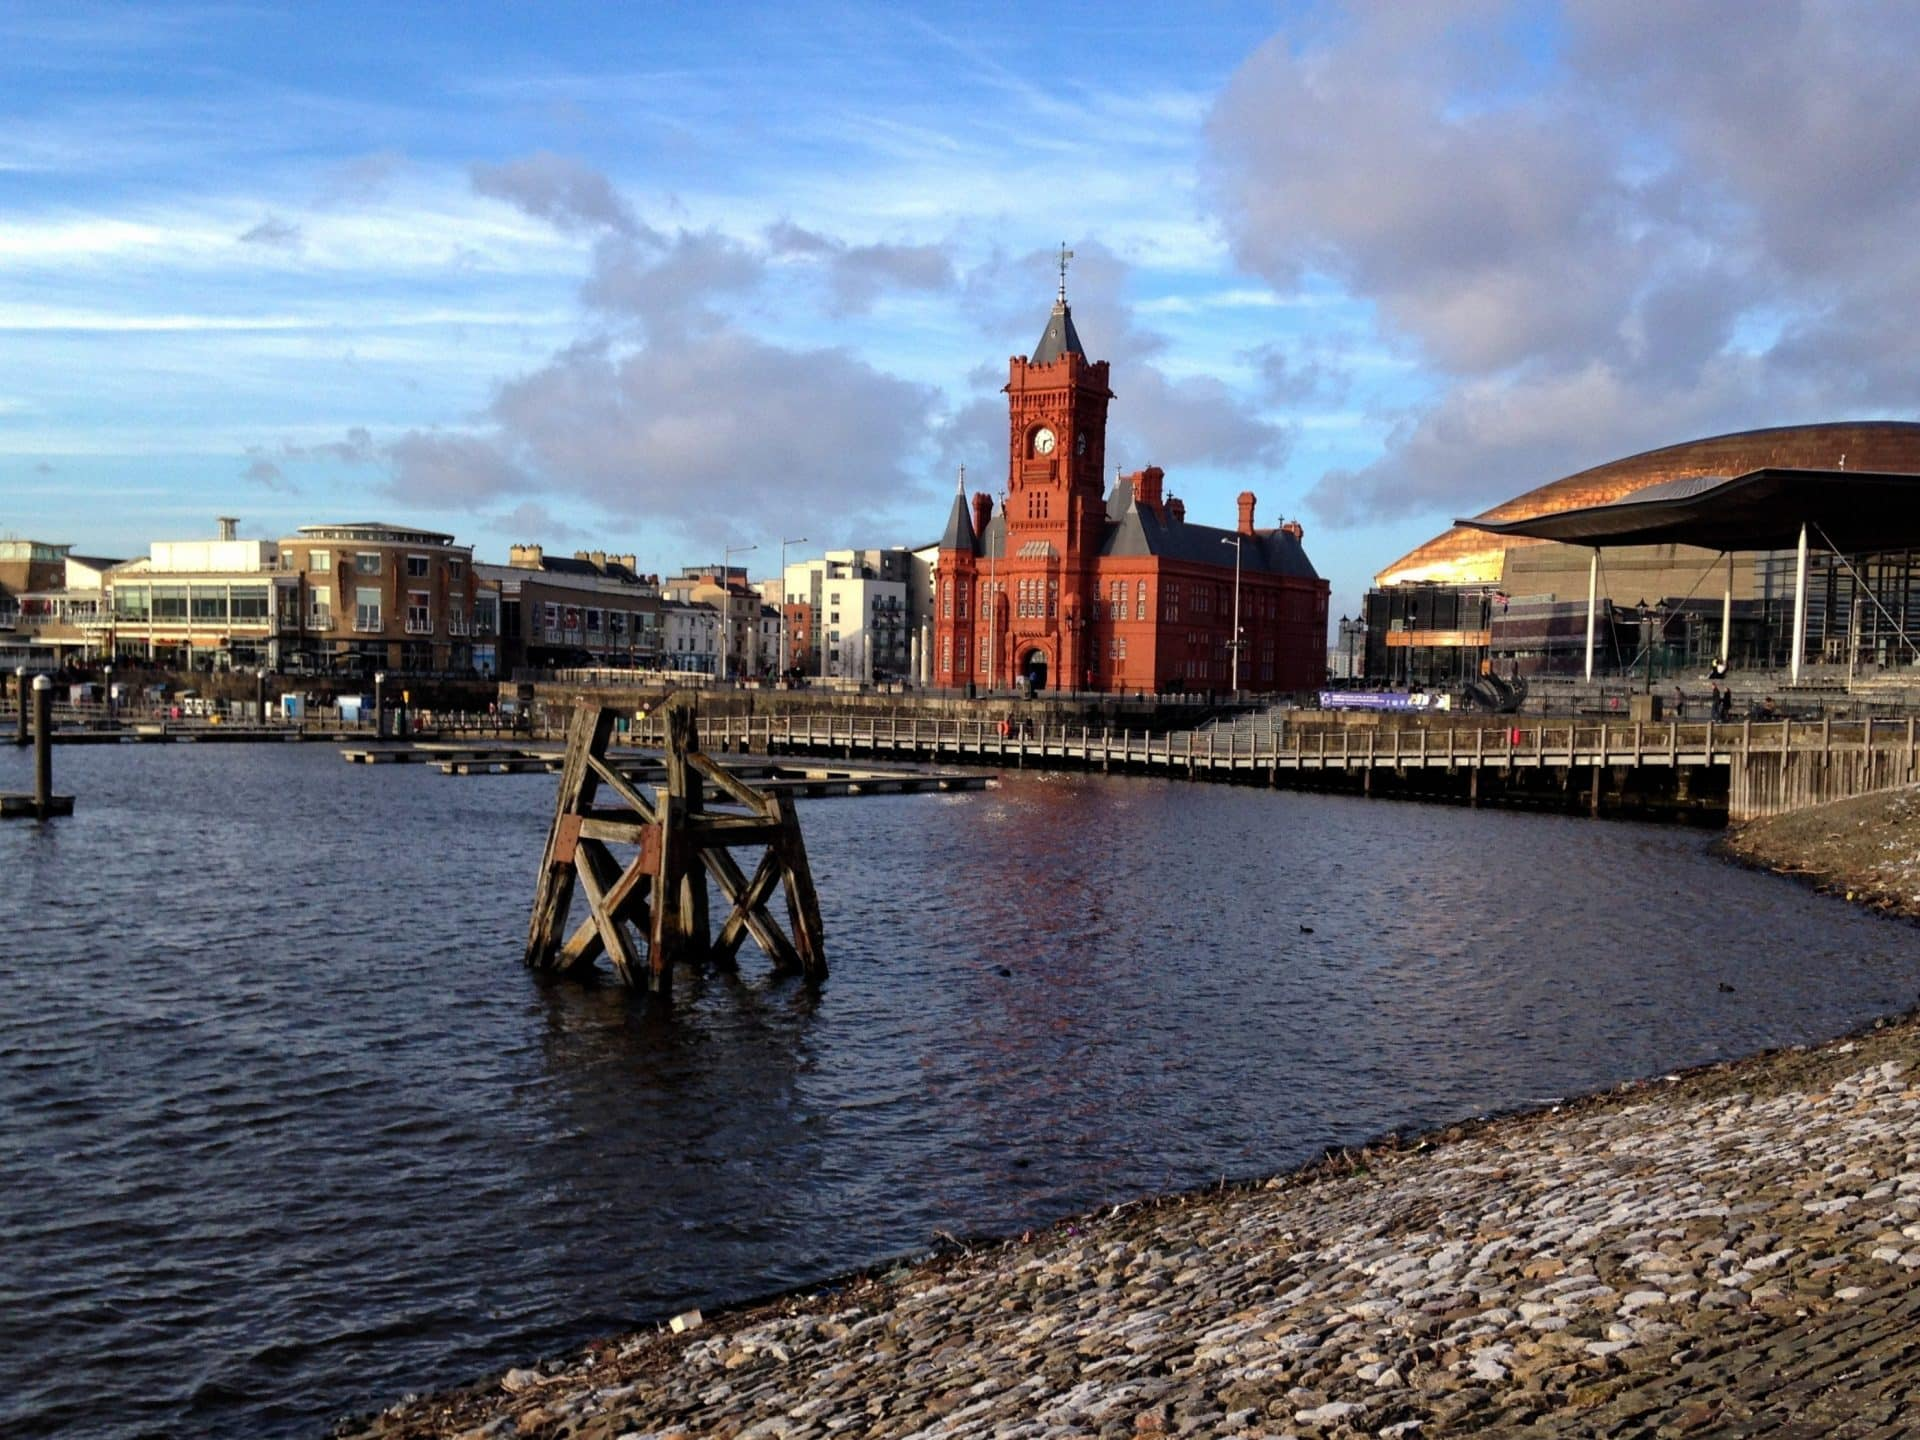 Cardiff, Wales - Experiencing the Globe